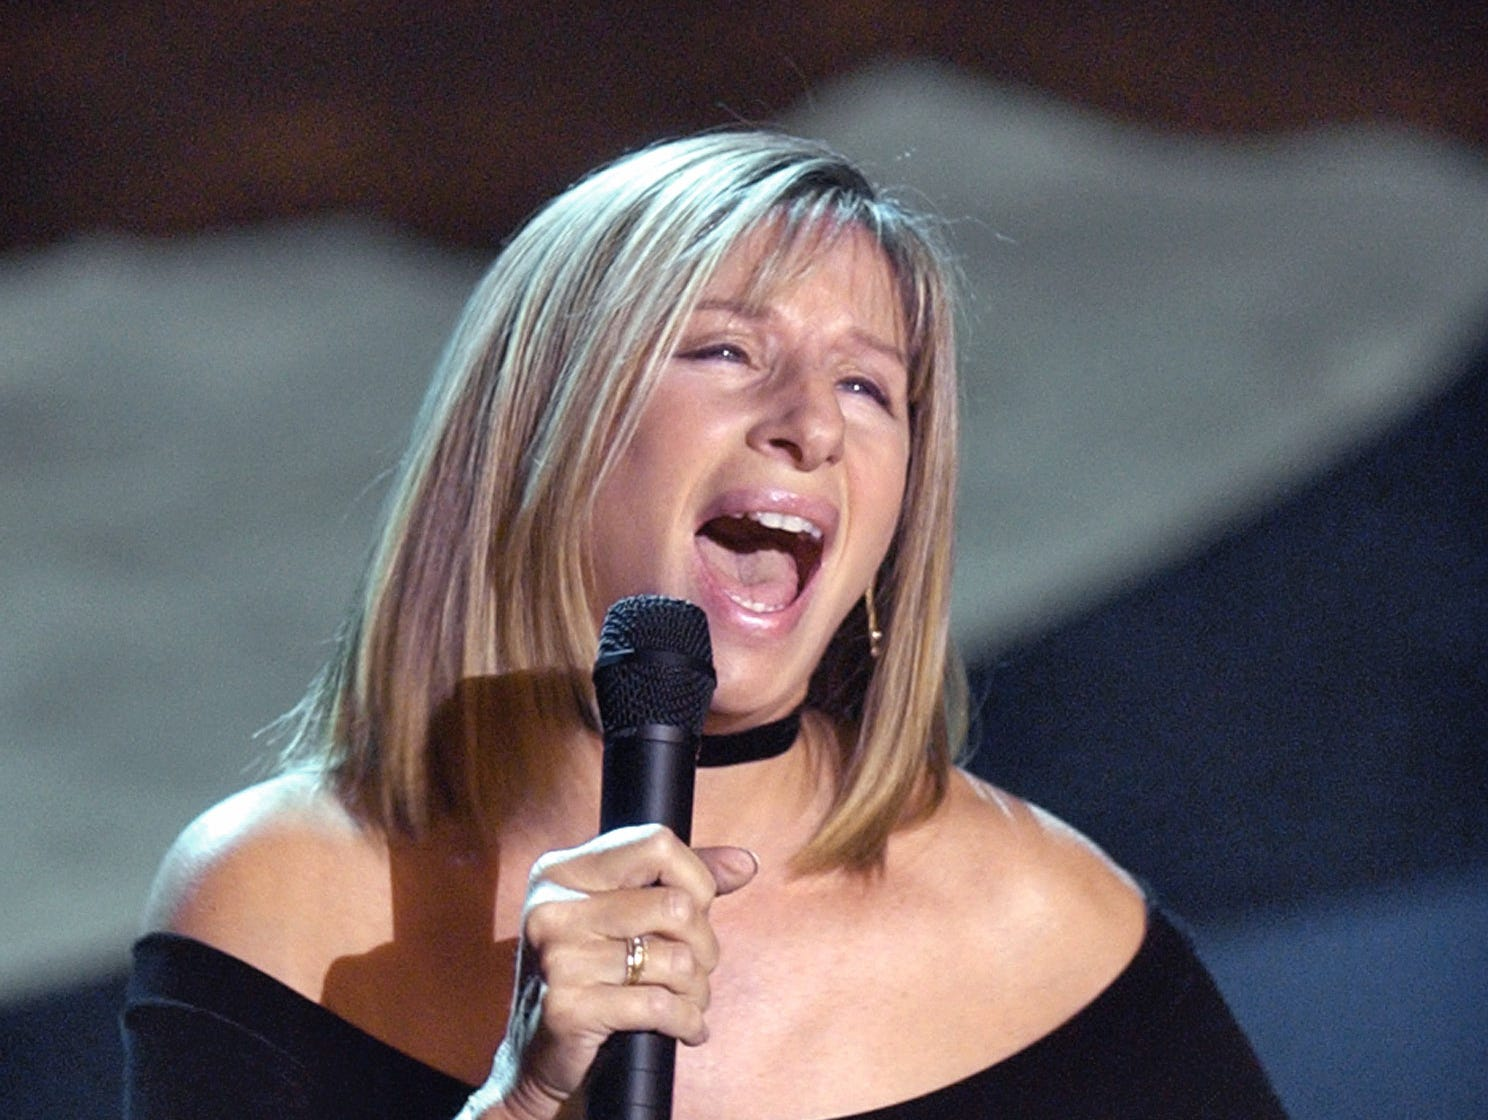 FILE--Barbra Streisand performs in this Nov. 4, 2001 file photo in Los Angeles. Streisand outbid the Mount Vernon Ladies Association to buy a 1790s-vintage portrait of George Washington for $412,750 at a Sotheby's auction in May 2001. The painting will be moving from the George Washington Museum to Streisand's home in Malibu, Calif.  (AP Photo/Kevork Djansezian, File) ORG XMIT: NY108